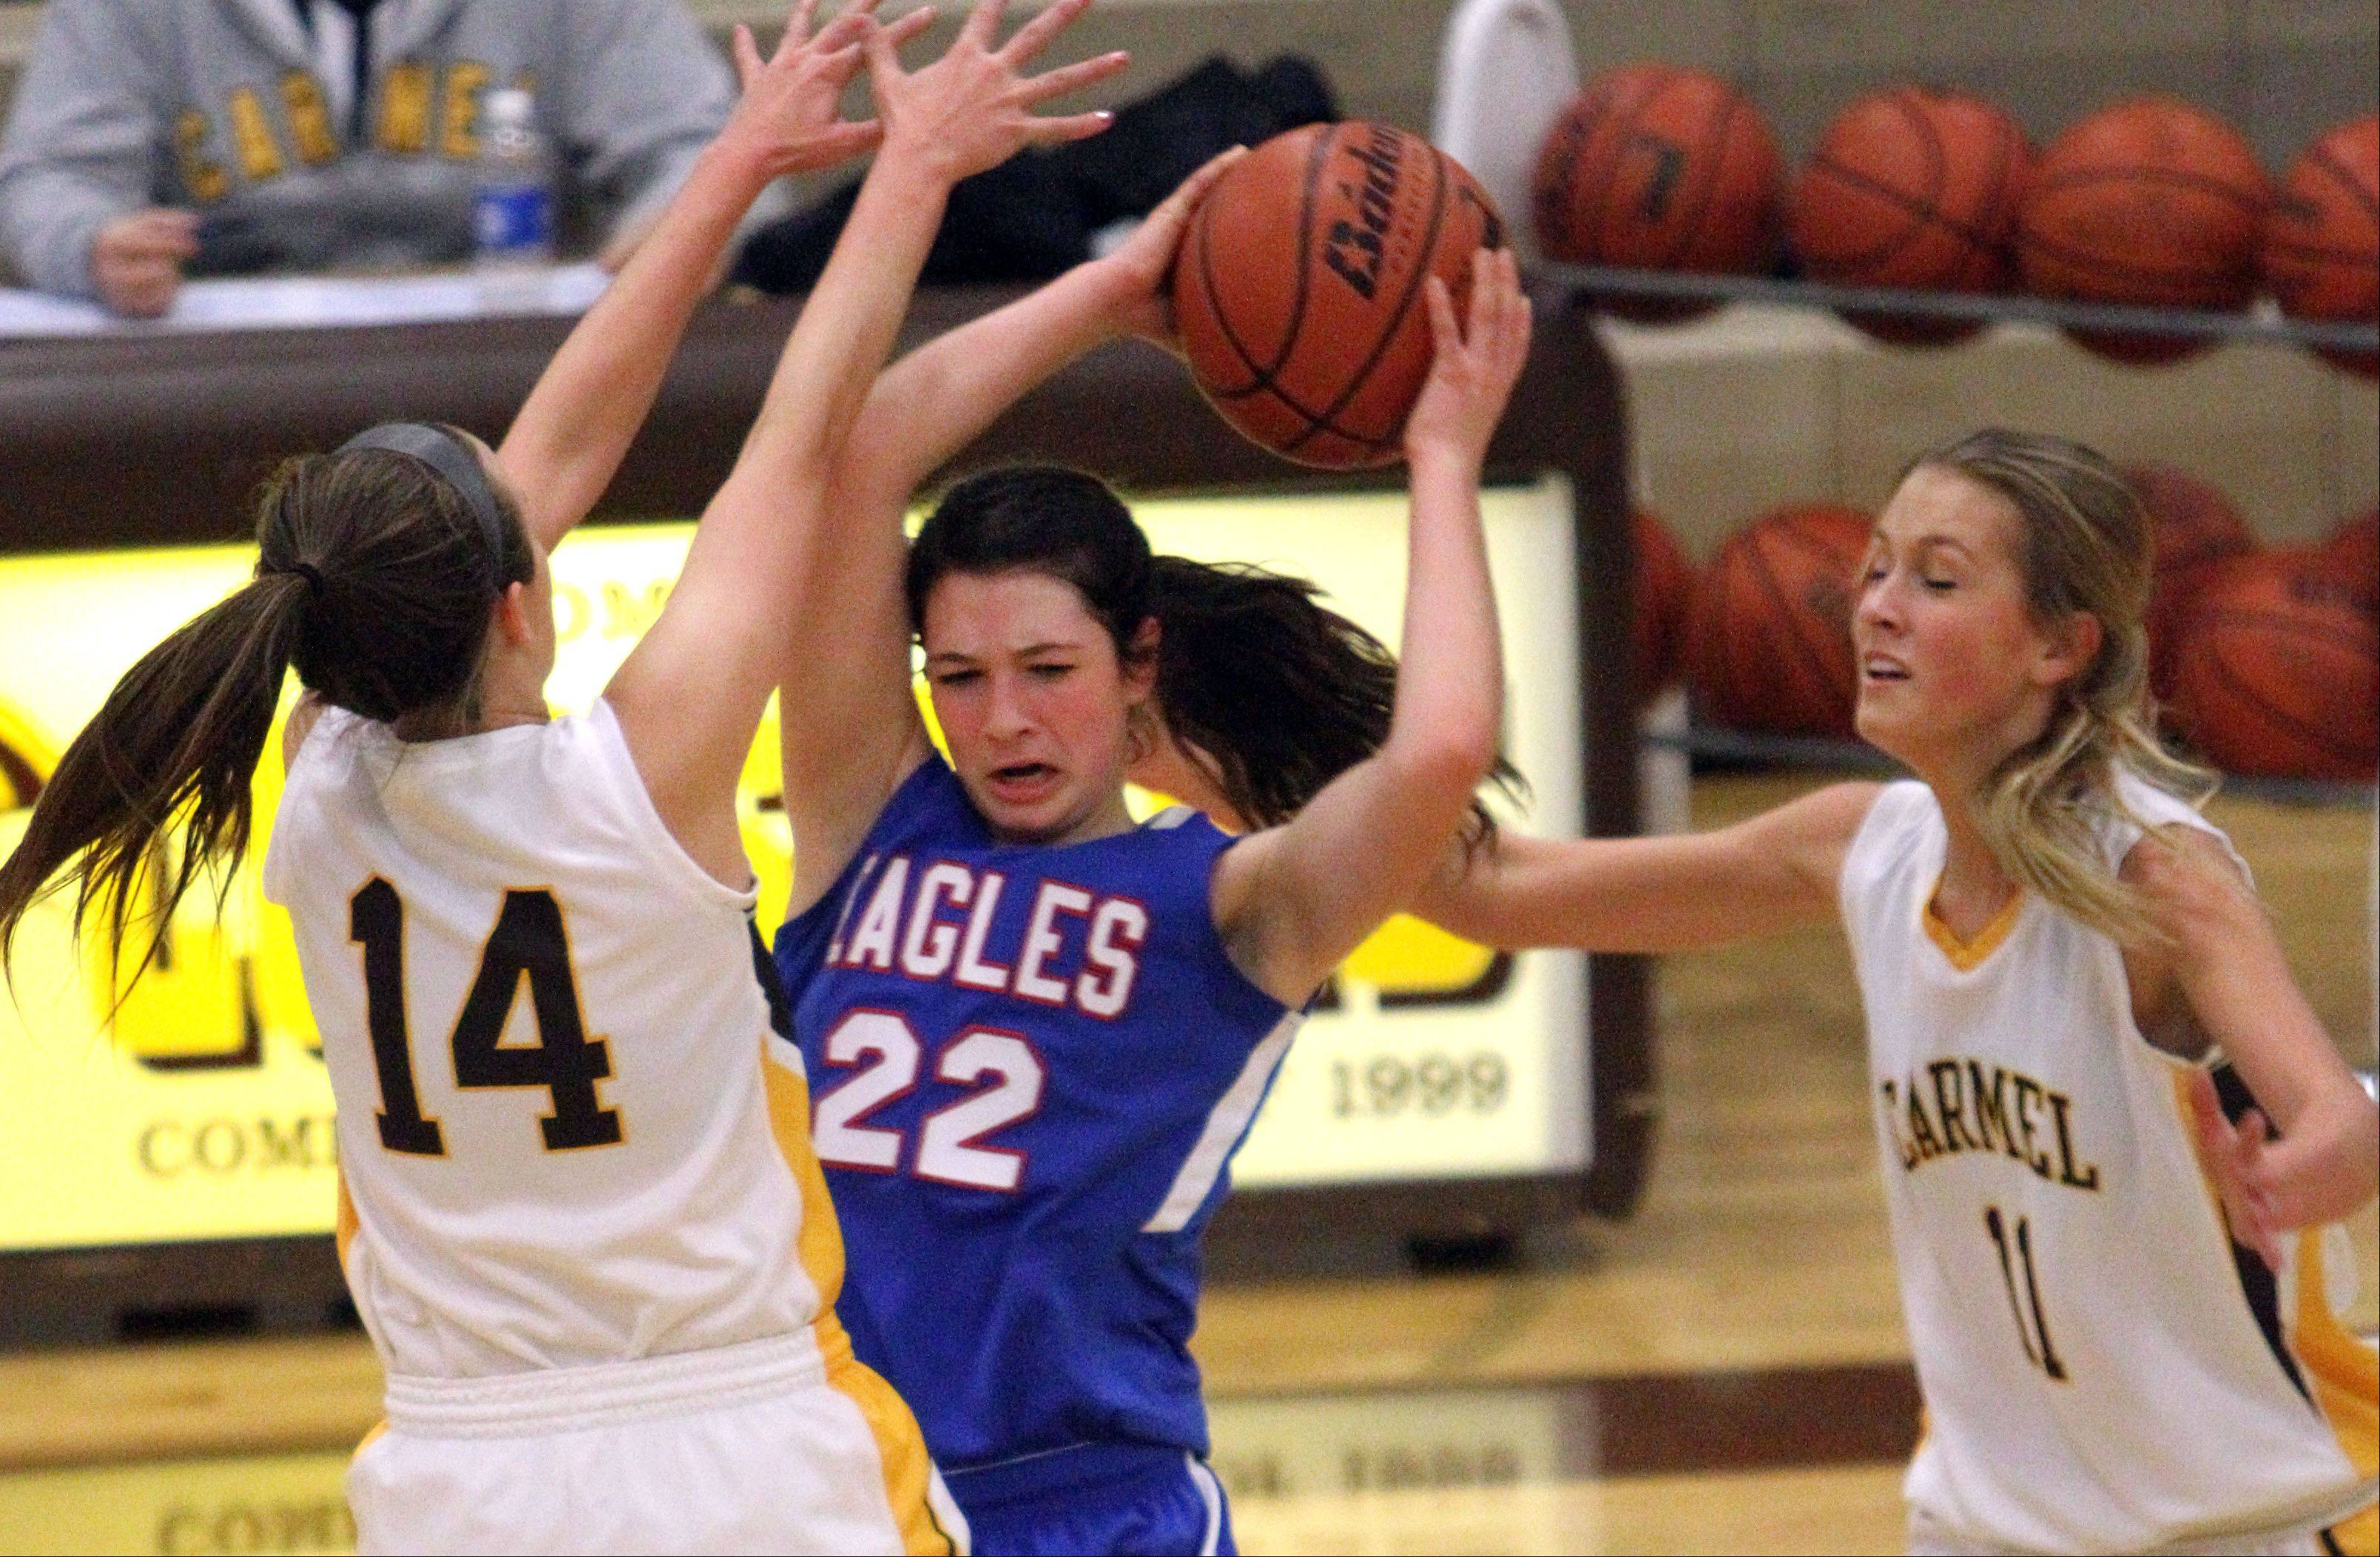 Lakes' Ellie Haviland, middle, gets trapped by Carmel's Cassidy Kloss, left, and Leah Lach on Monday night at Carmel Catholic.